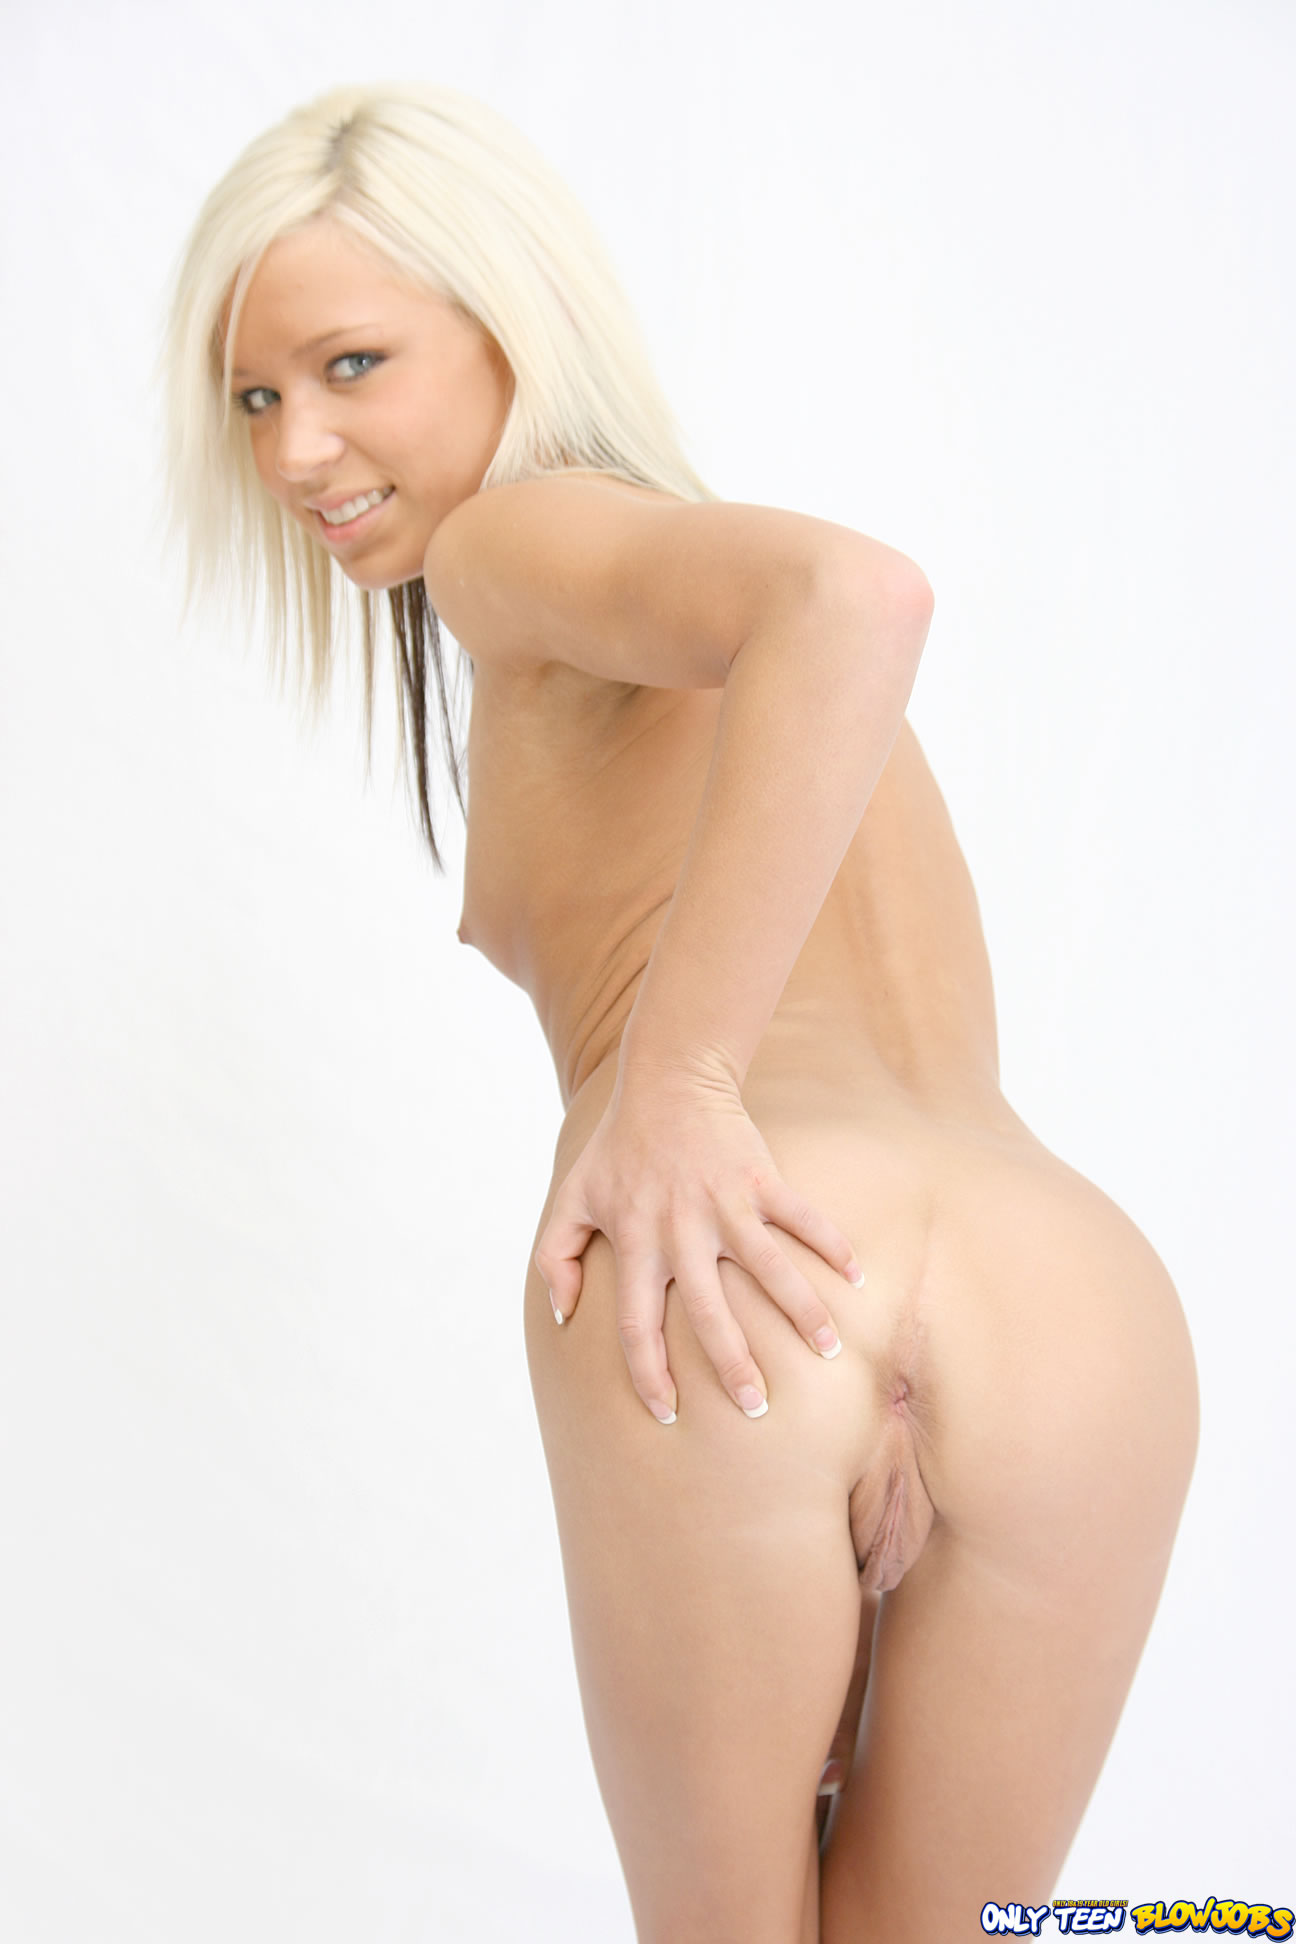 Teen Shaved Totally Shaved Petite Blonde Kacey Jordan With Perfect Pussy Giving Blowjob